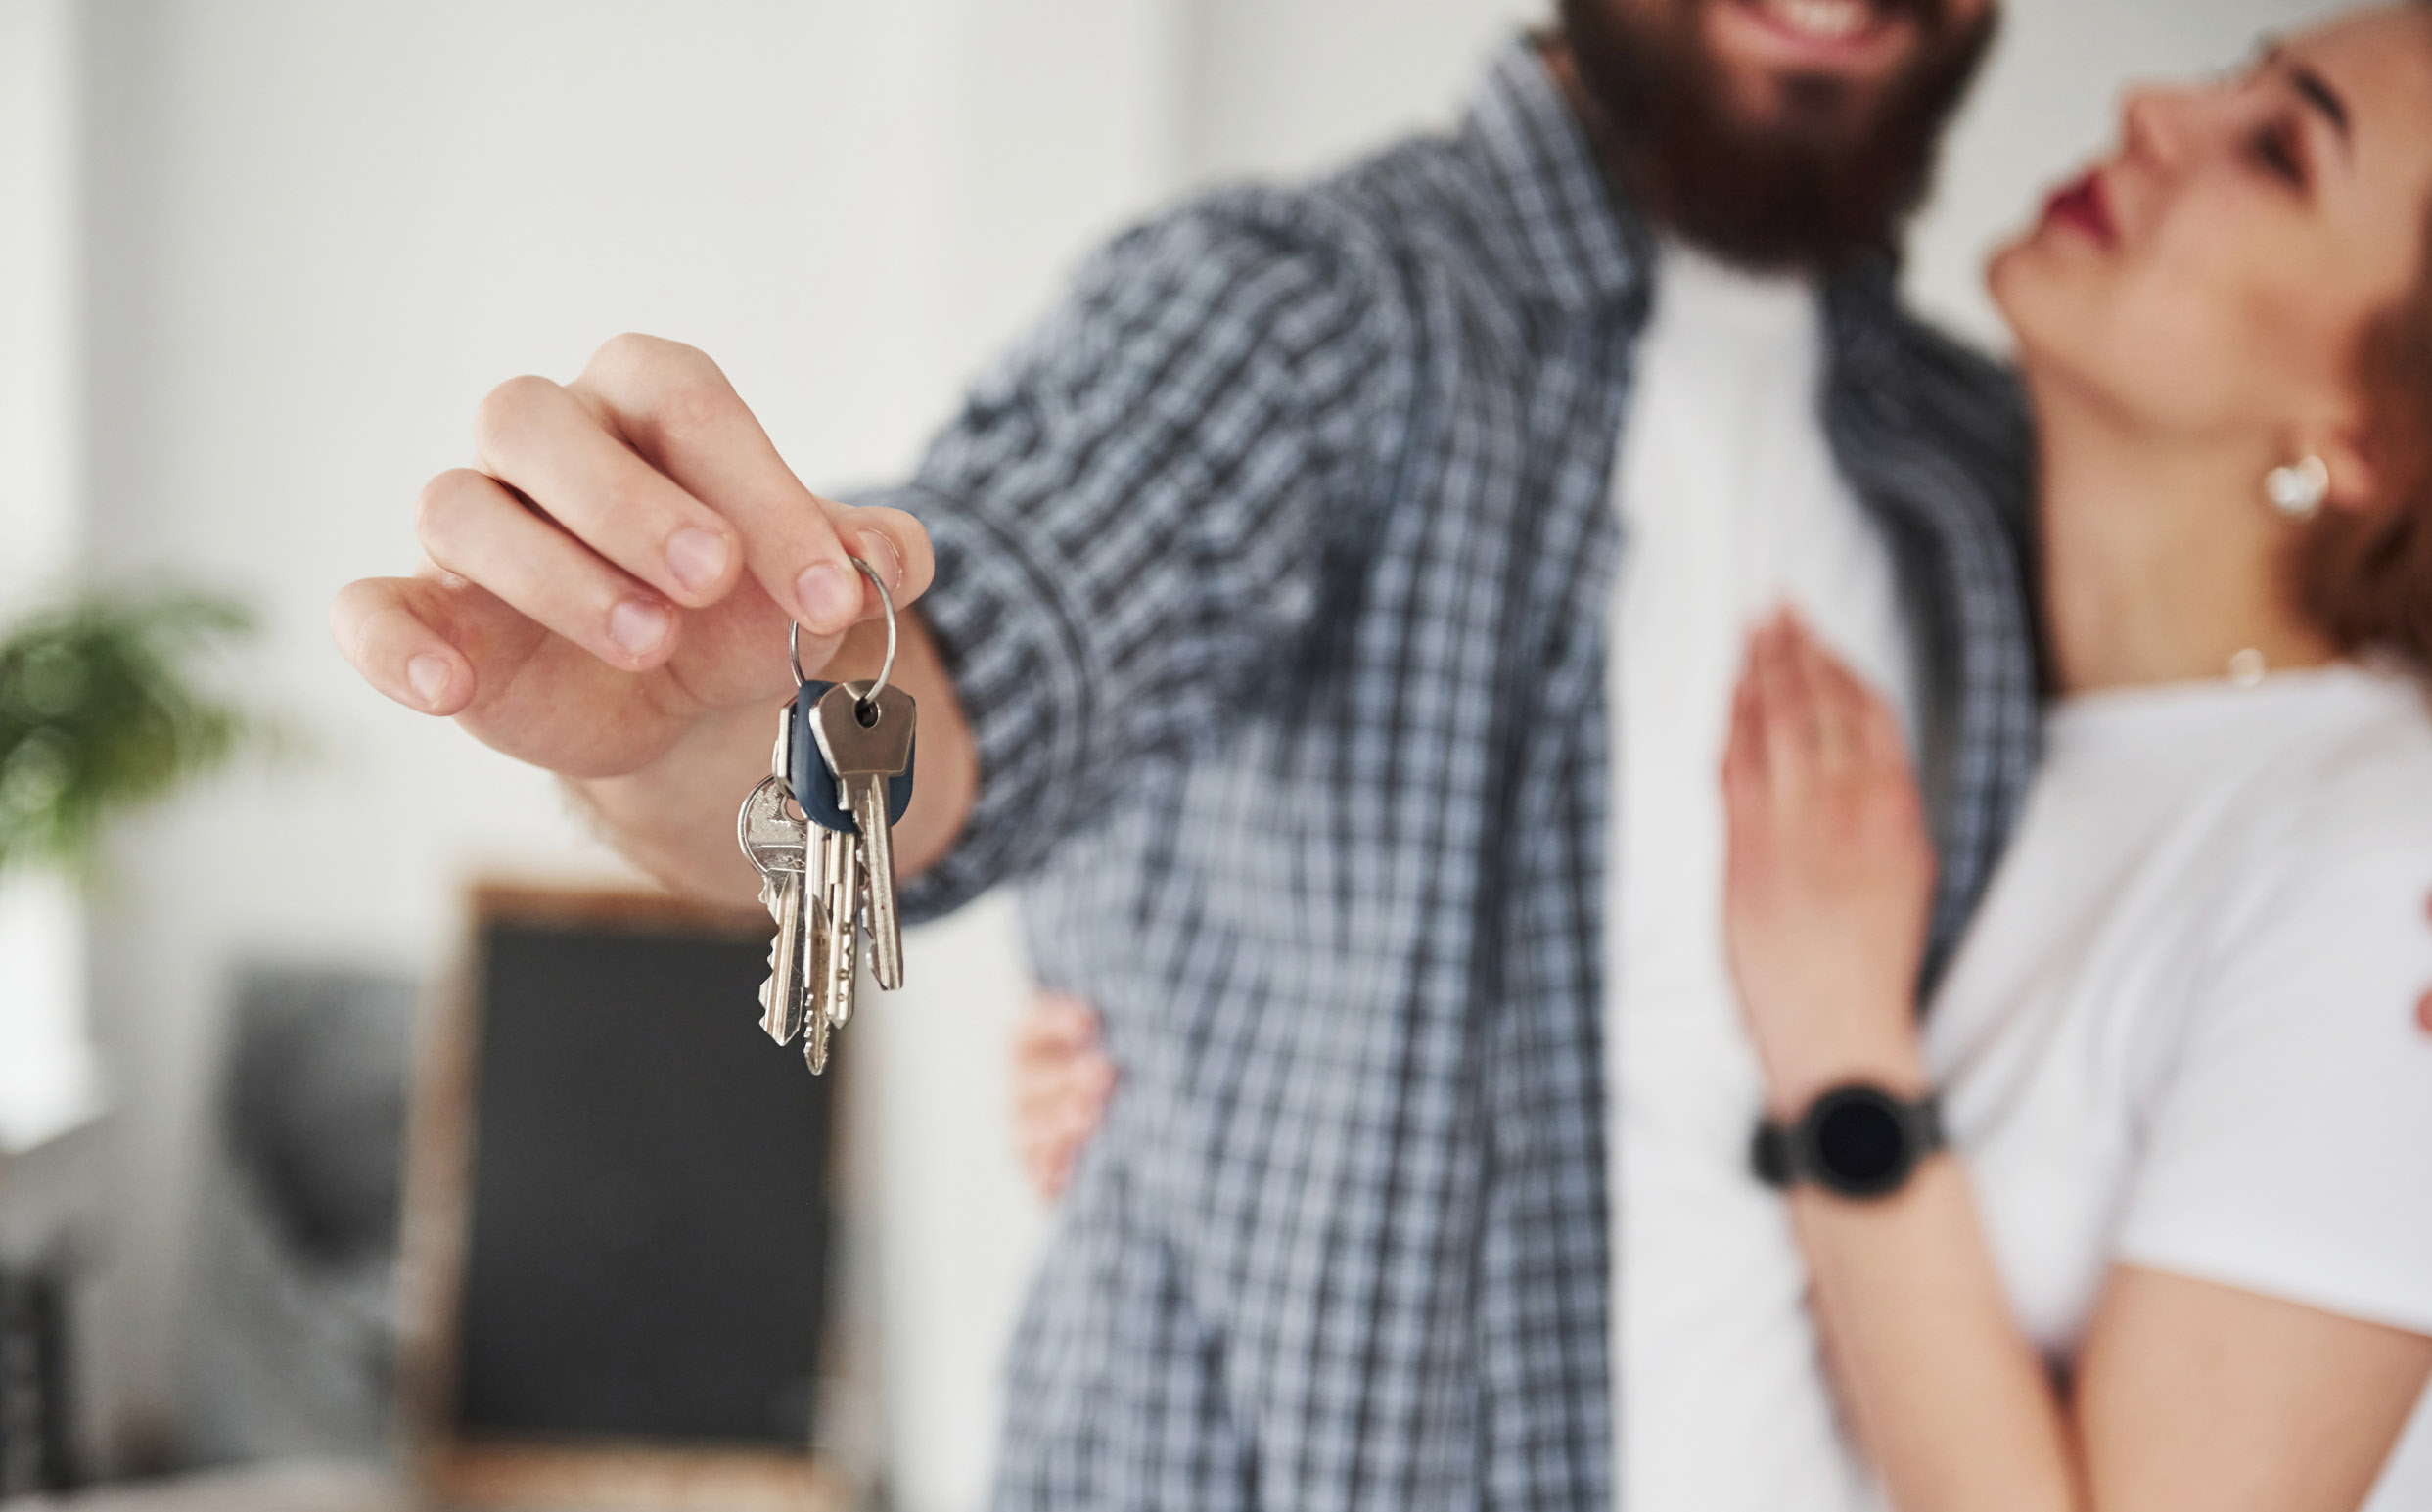 UK property market records steady growth but London's rental market lagging behind